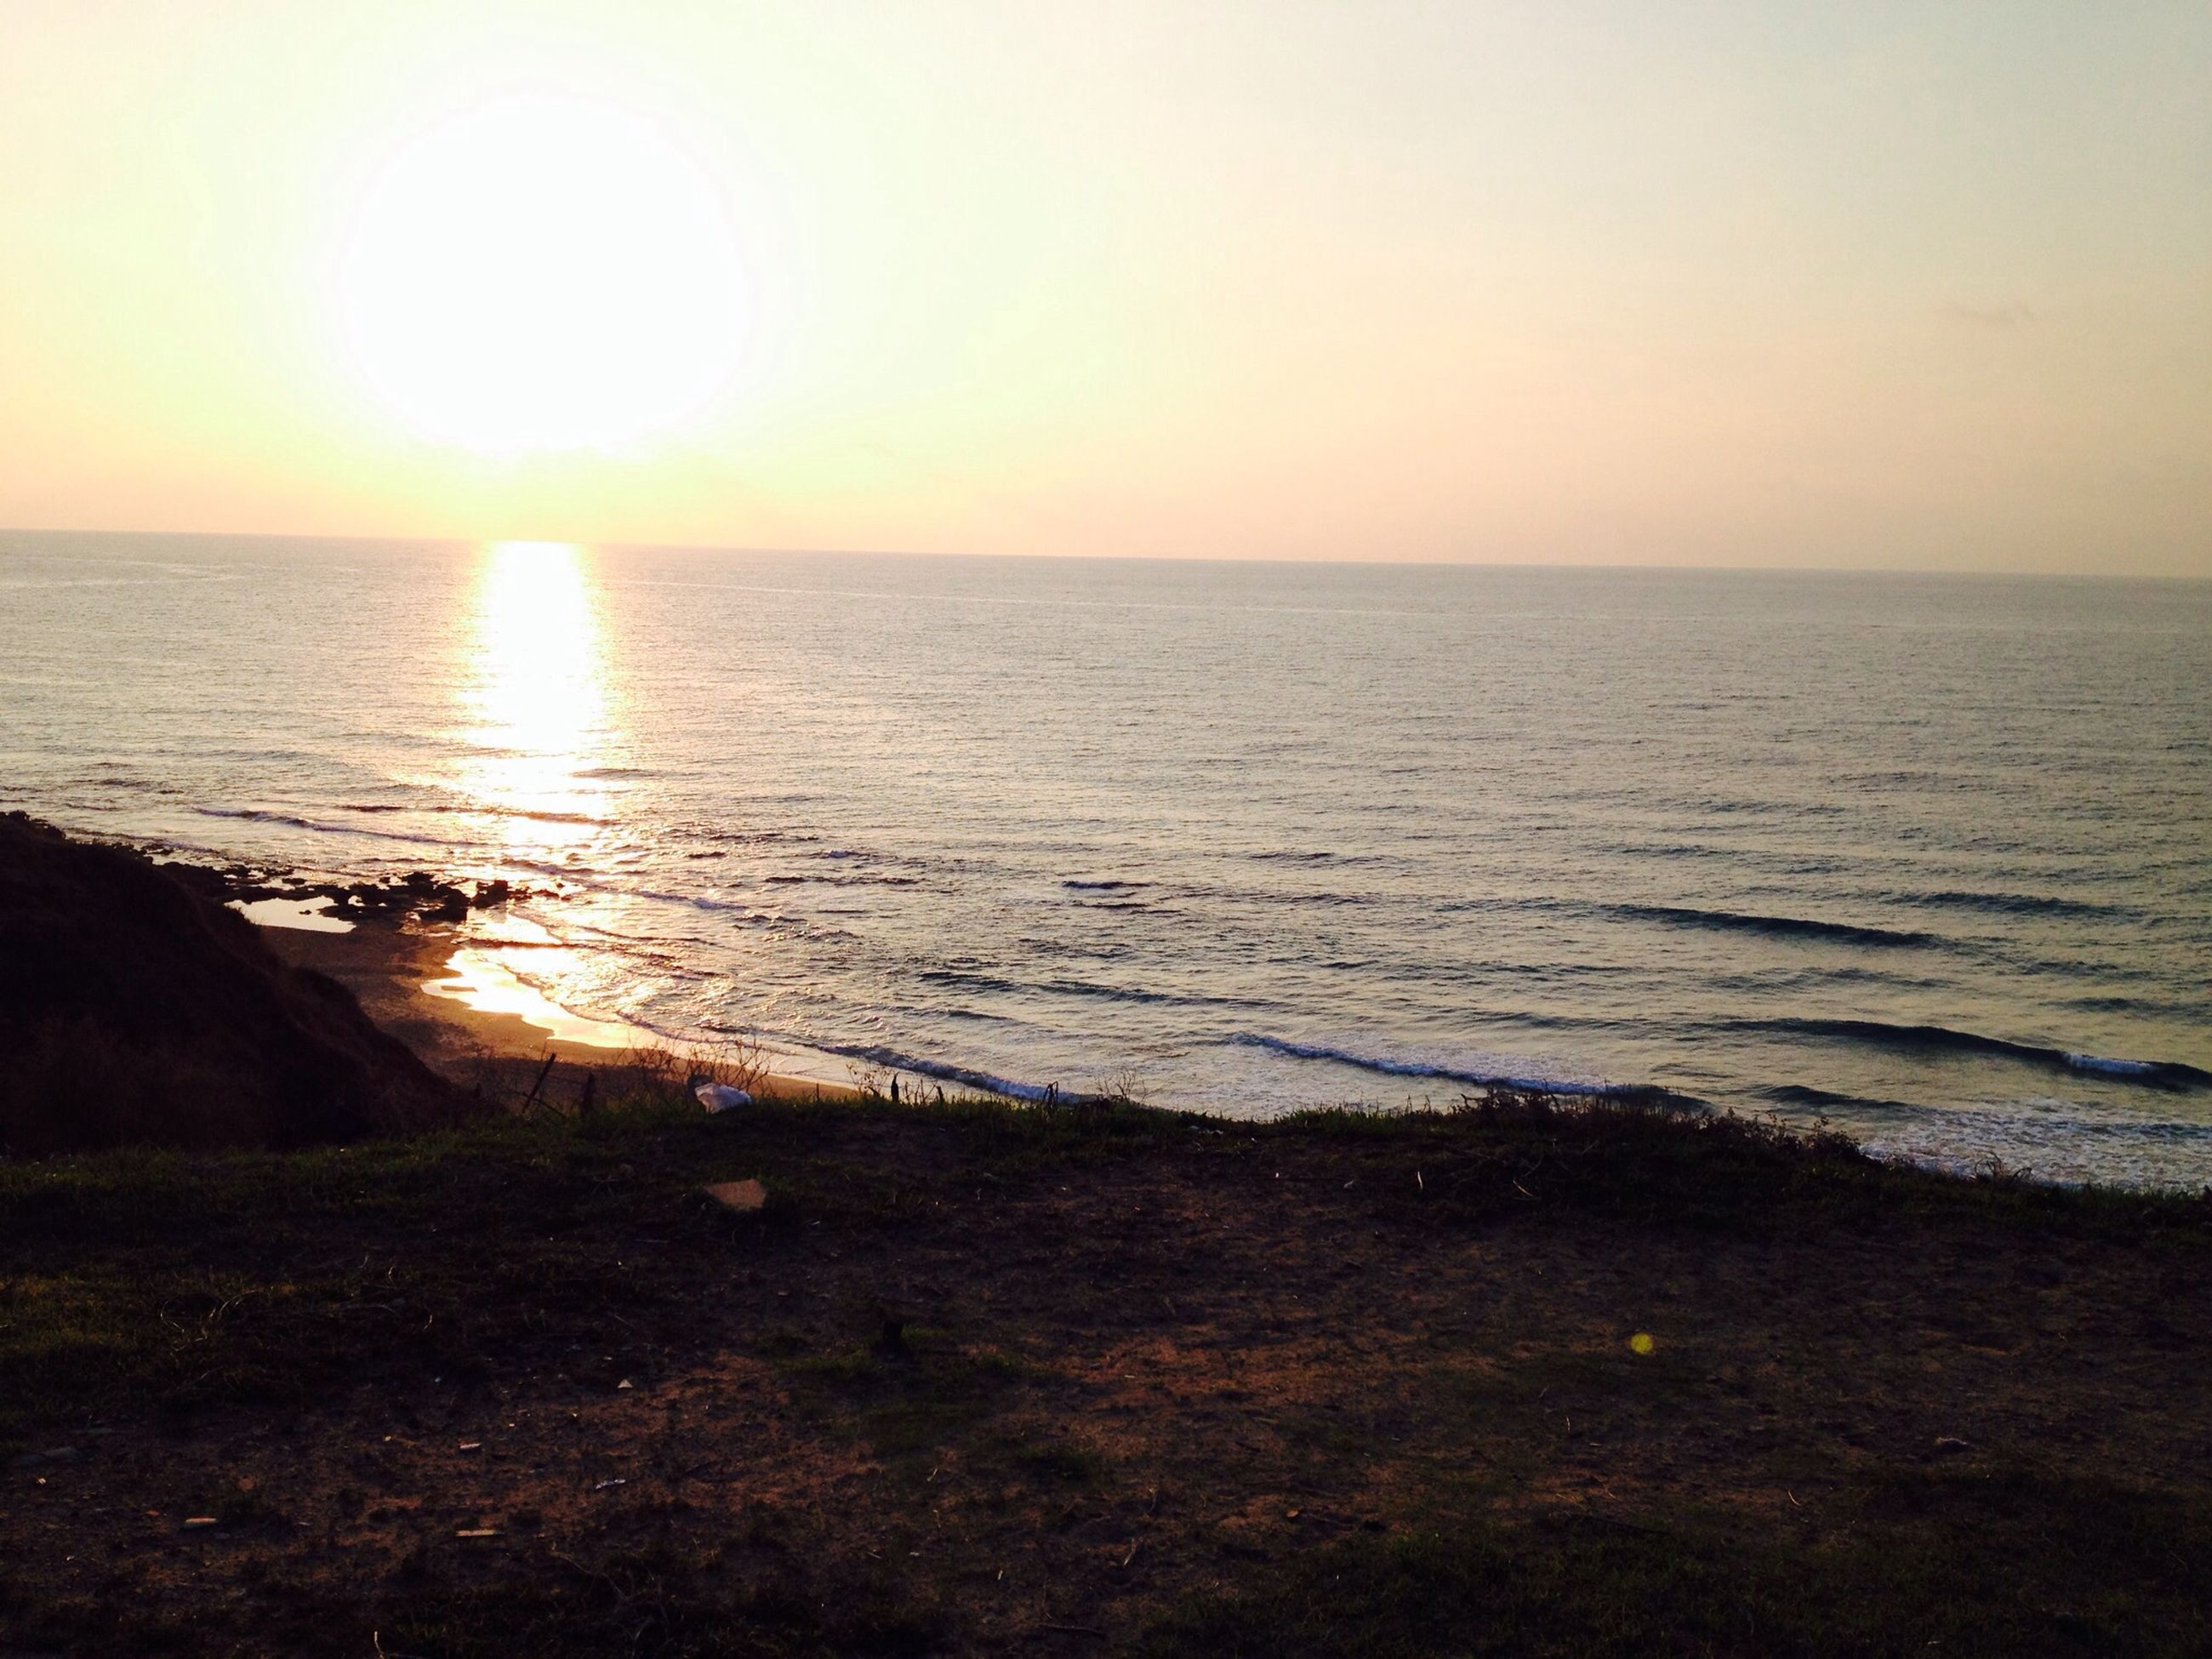 sea, horizon over water, water, tranquil scene, sun, sunset, scenics, tranquility, beauty in nature, clear sky, nature, idyllic, beach, reflection, sky, shore, sunlight, seascape, rippled, copy space